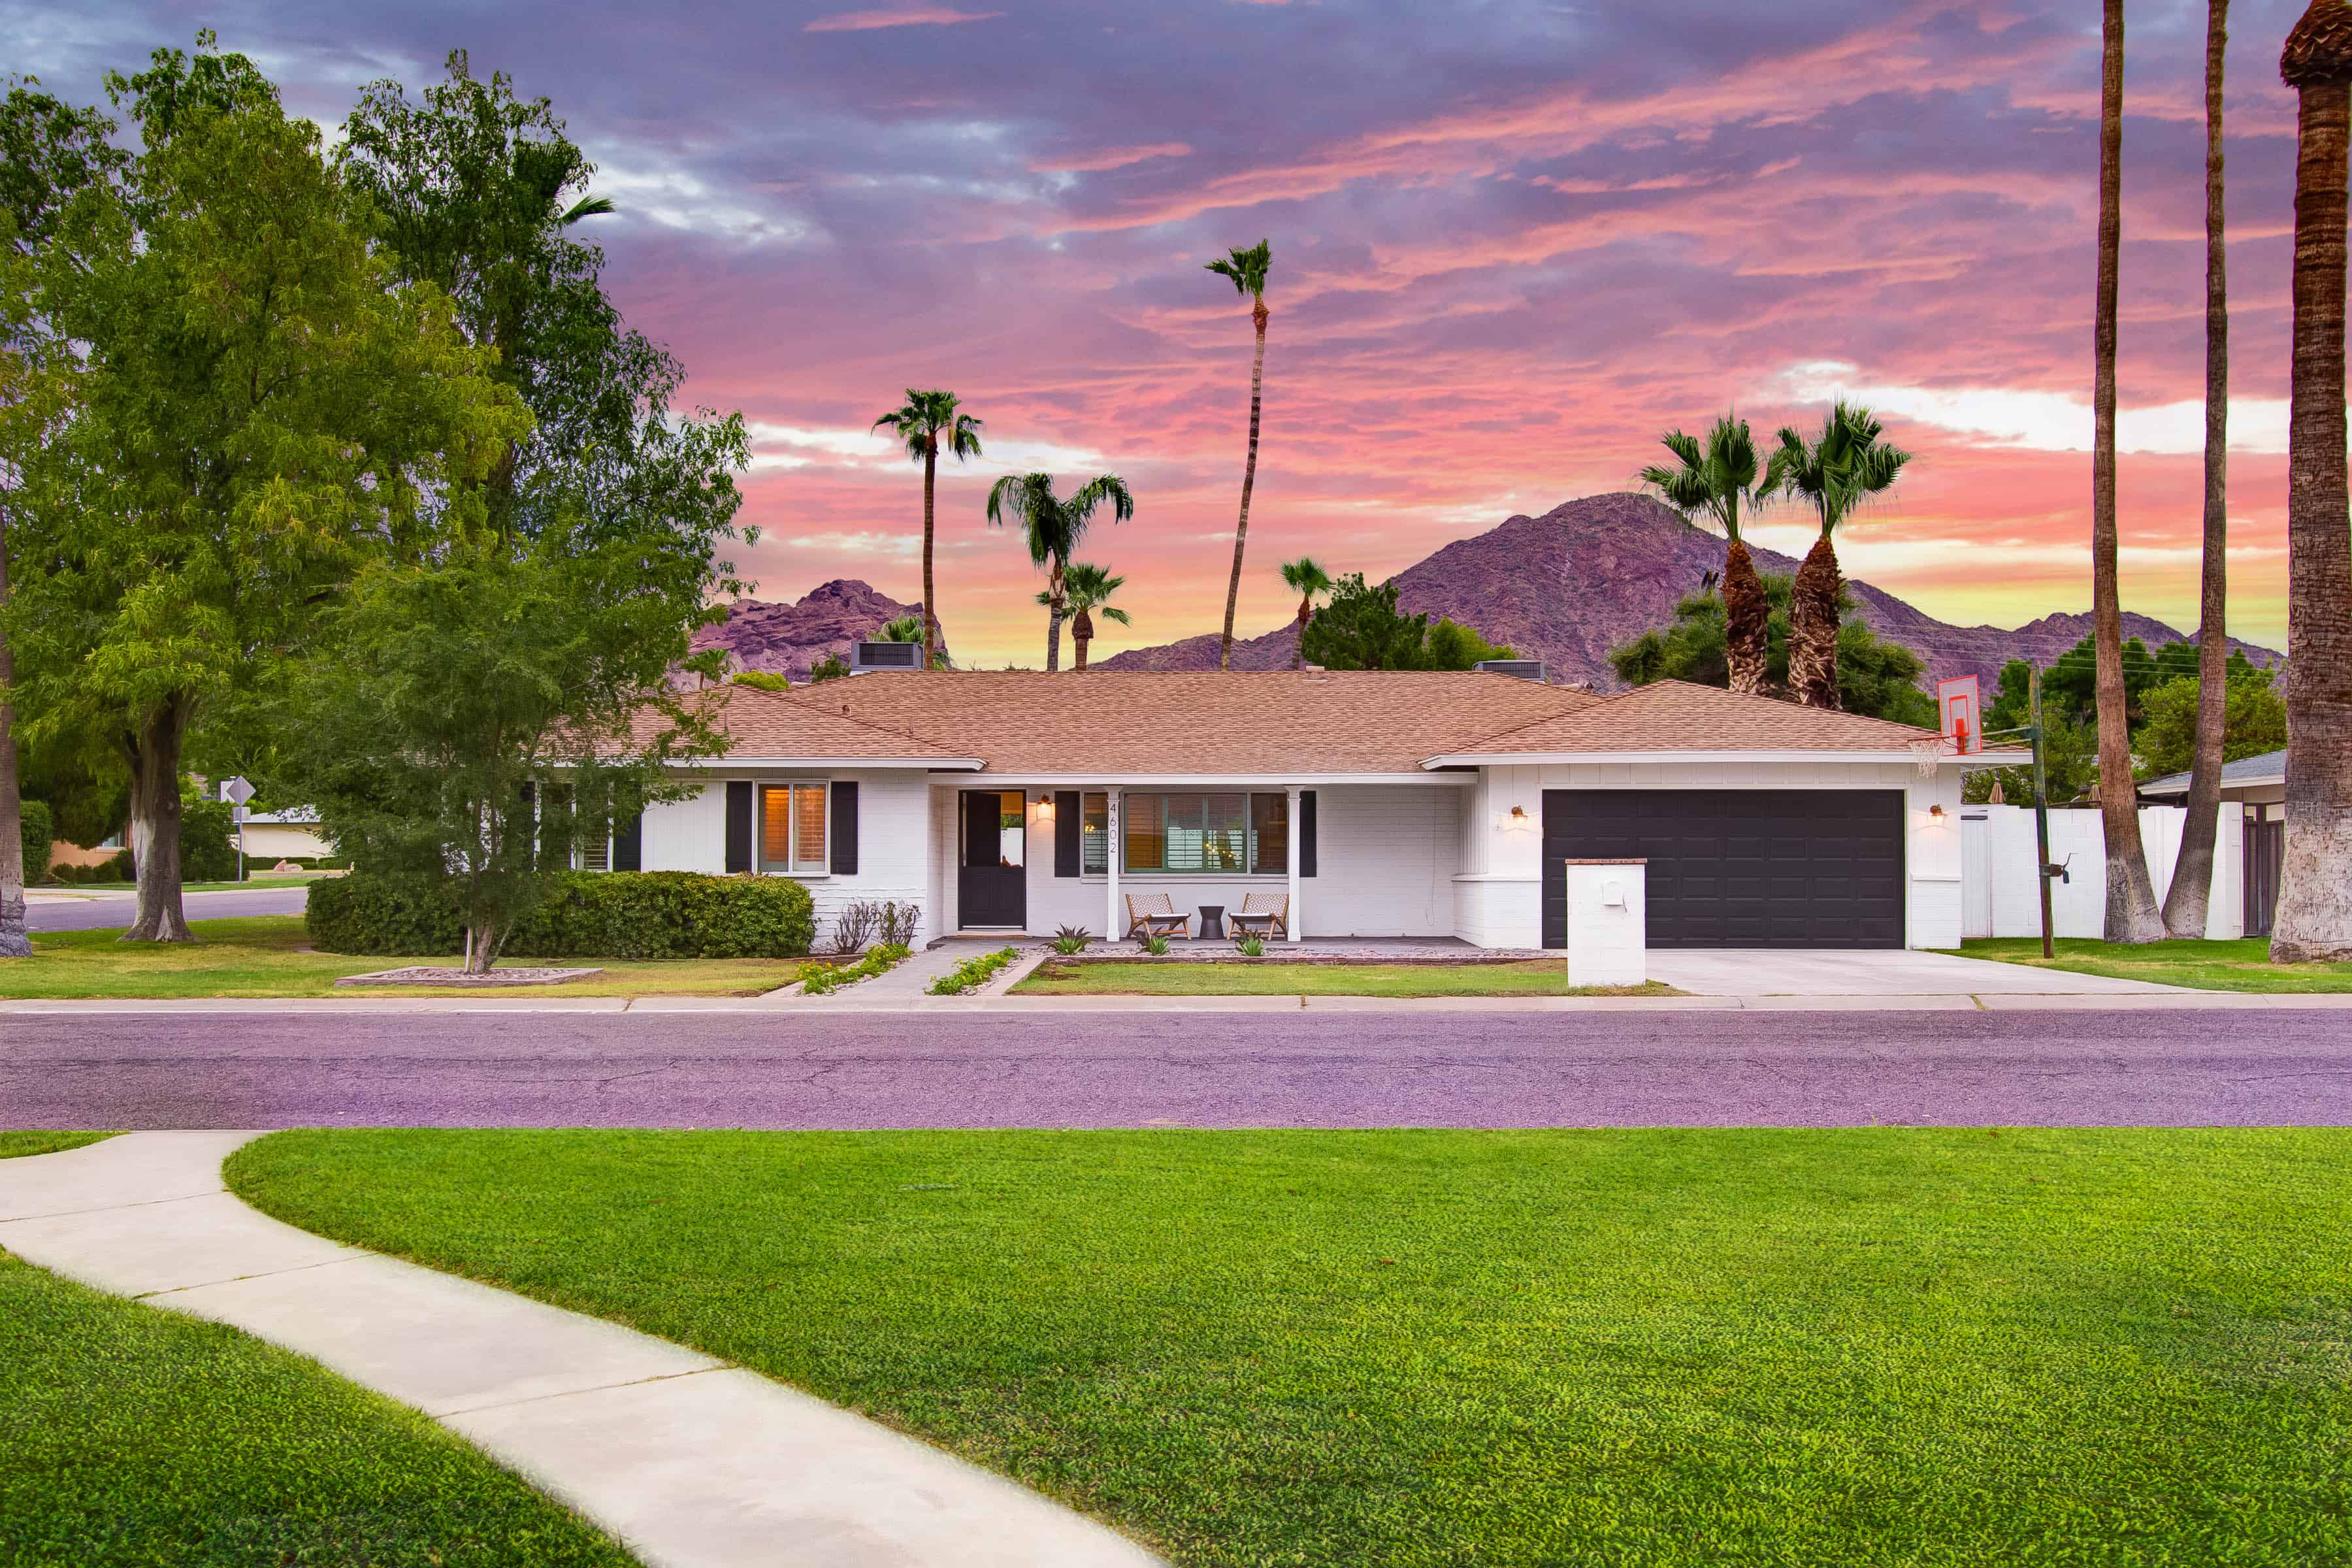 calle redondo staged home with view of camelback mountain in the  background